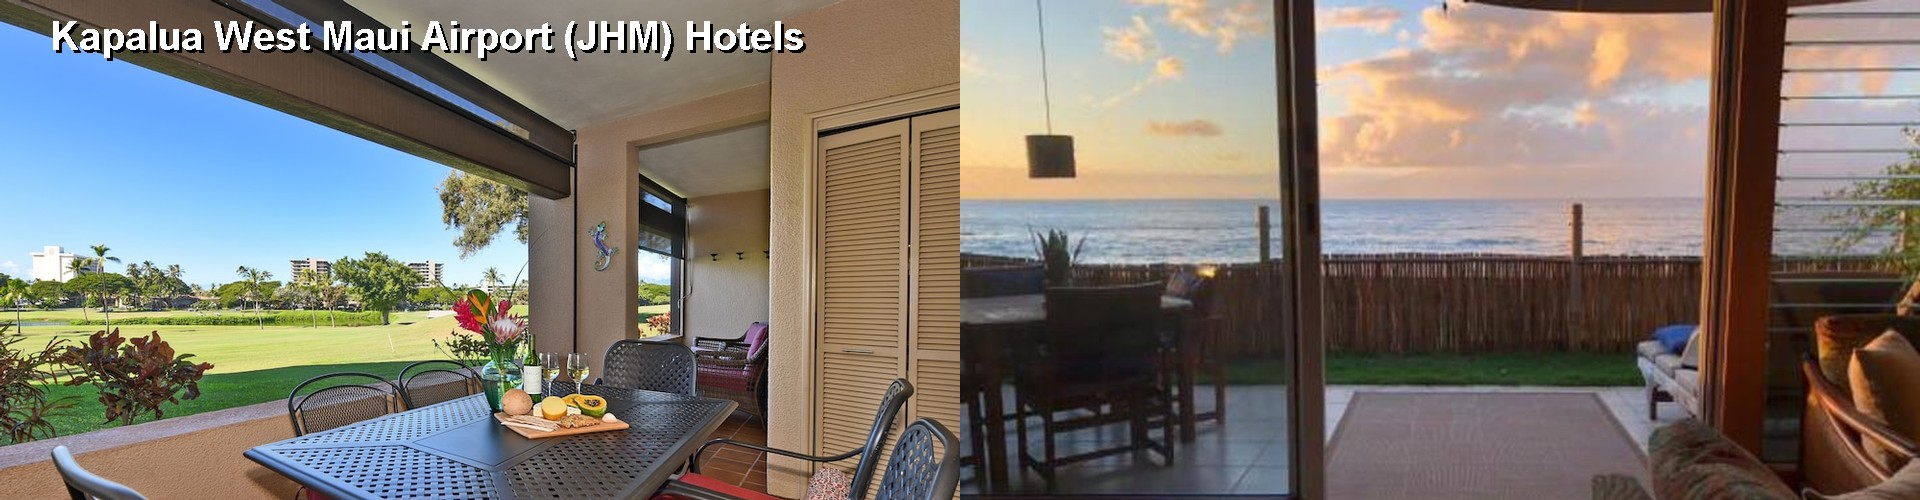 5 Best Hotels Near Kapalua West Maui Airport Jhm